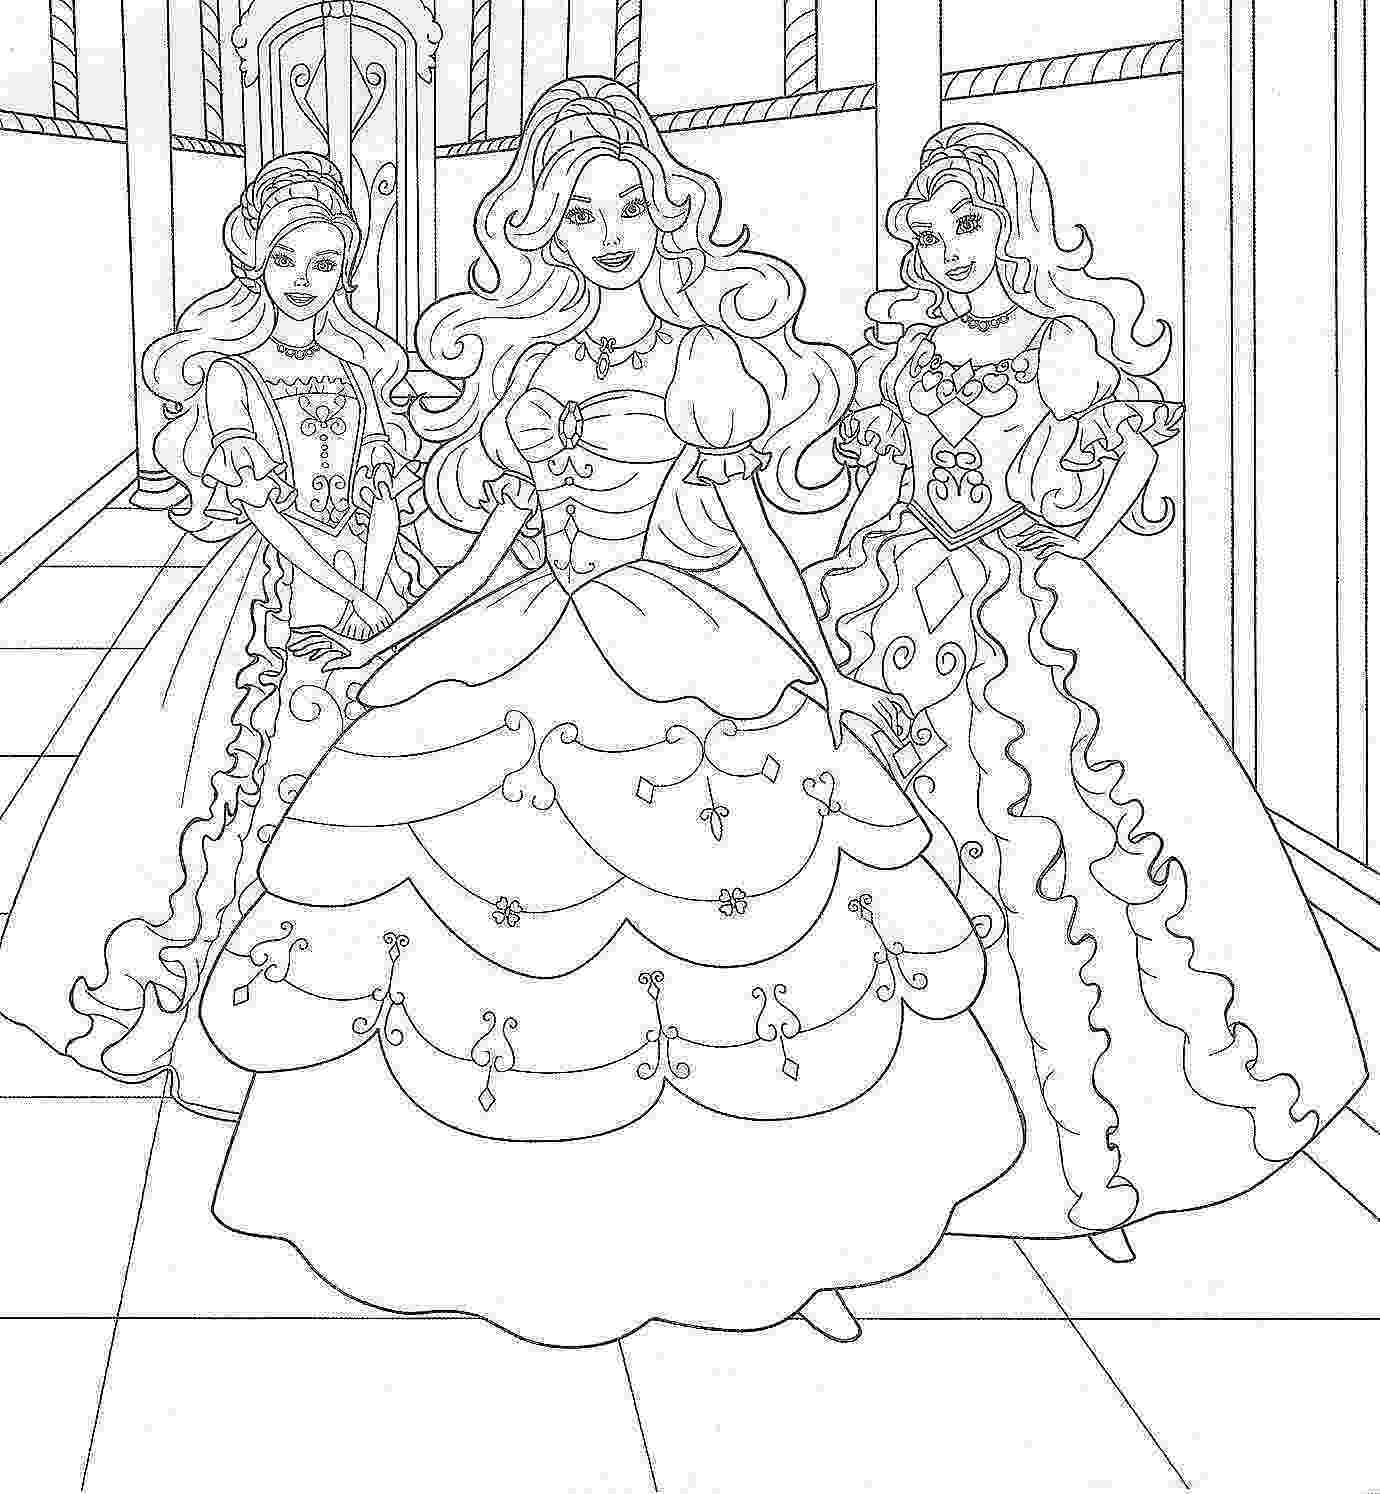 pictures of barbie for colouring barbie coloring pages coloring pages to print of pictures barbie for colouring